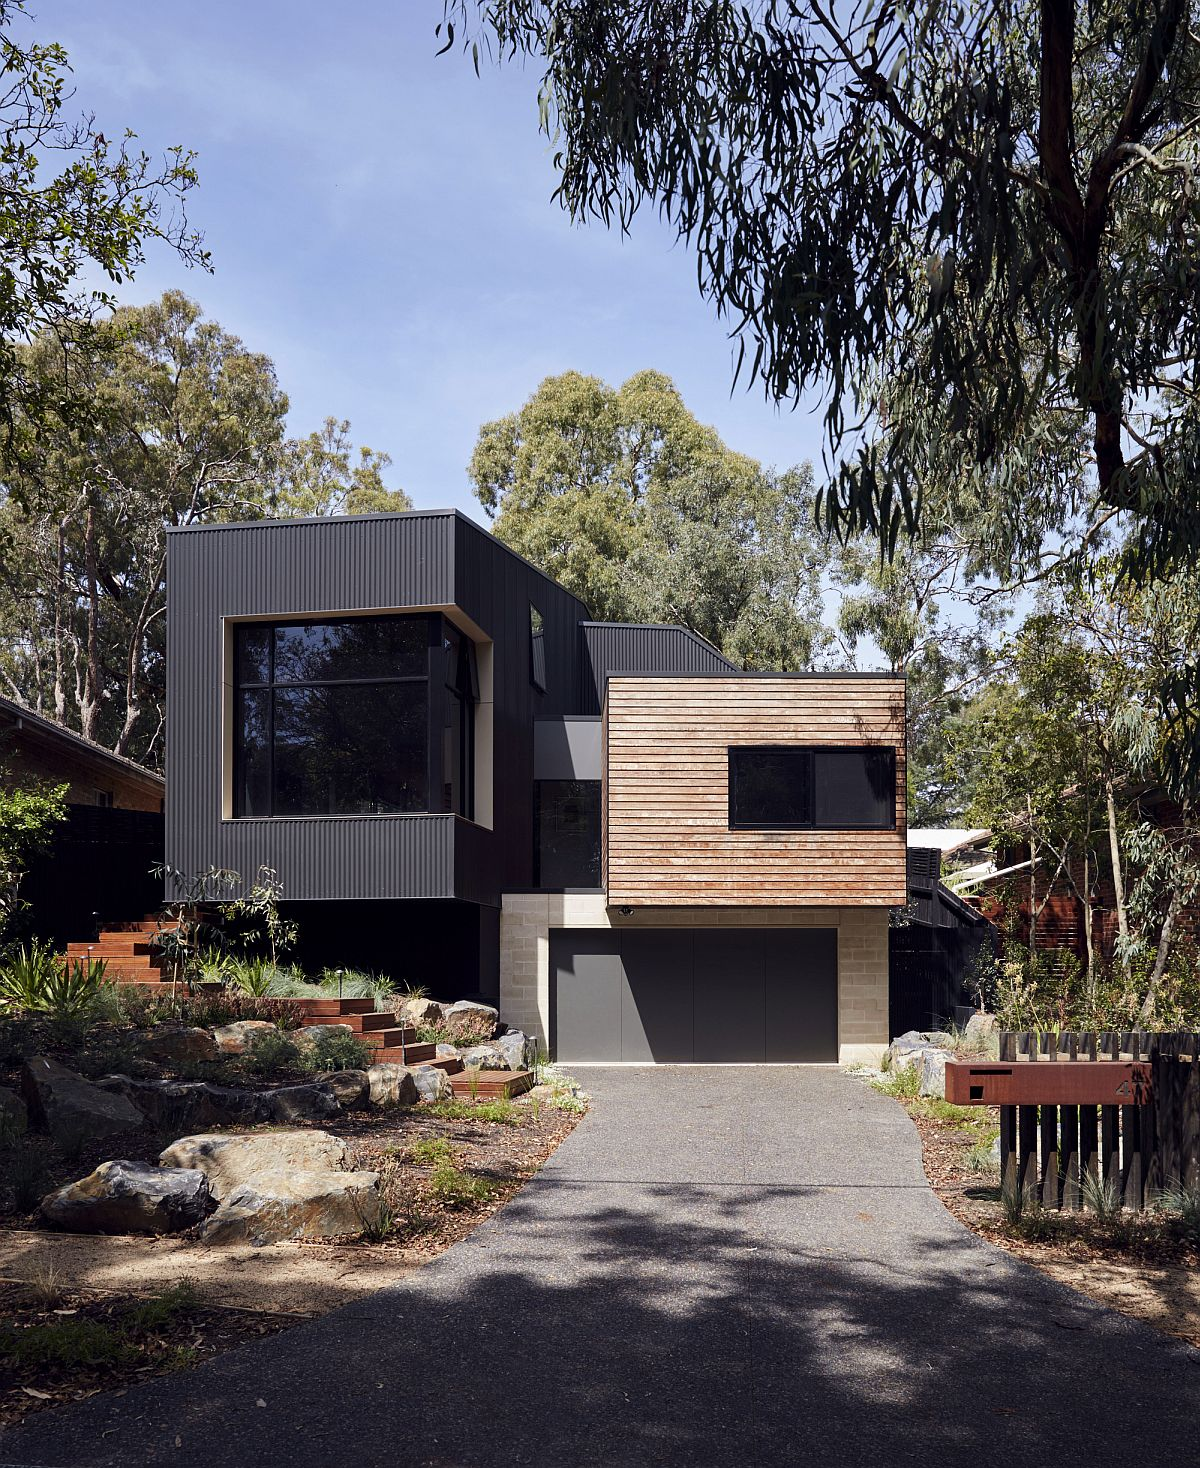 Cantilevered top level of the home with dark exterior stands out visually